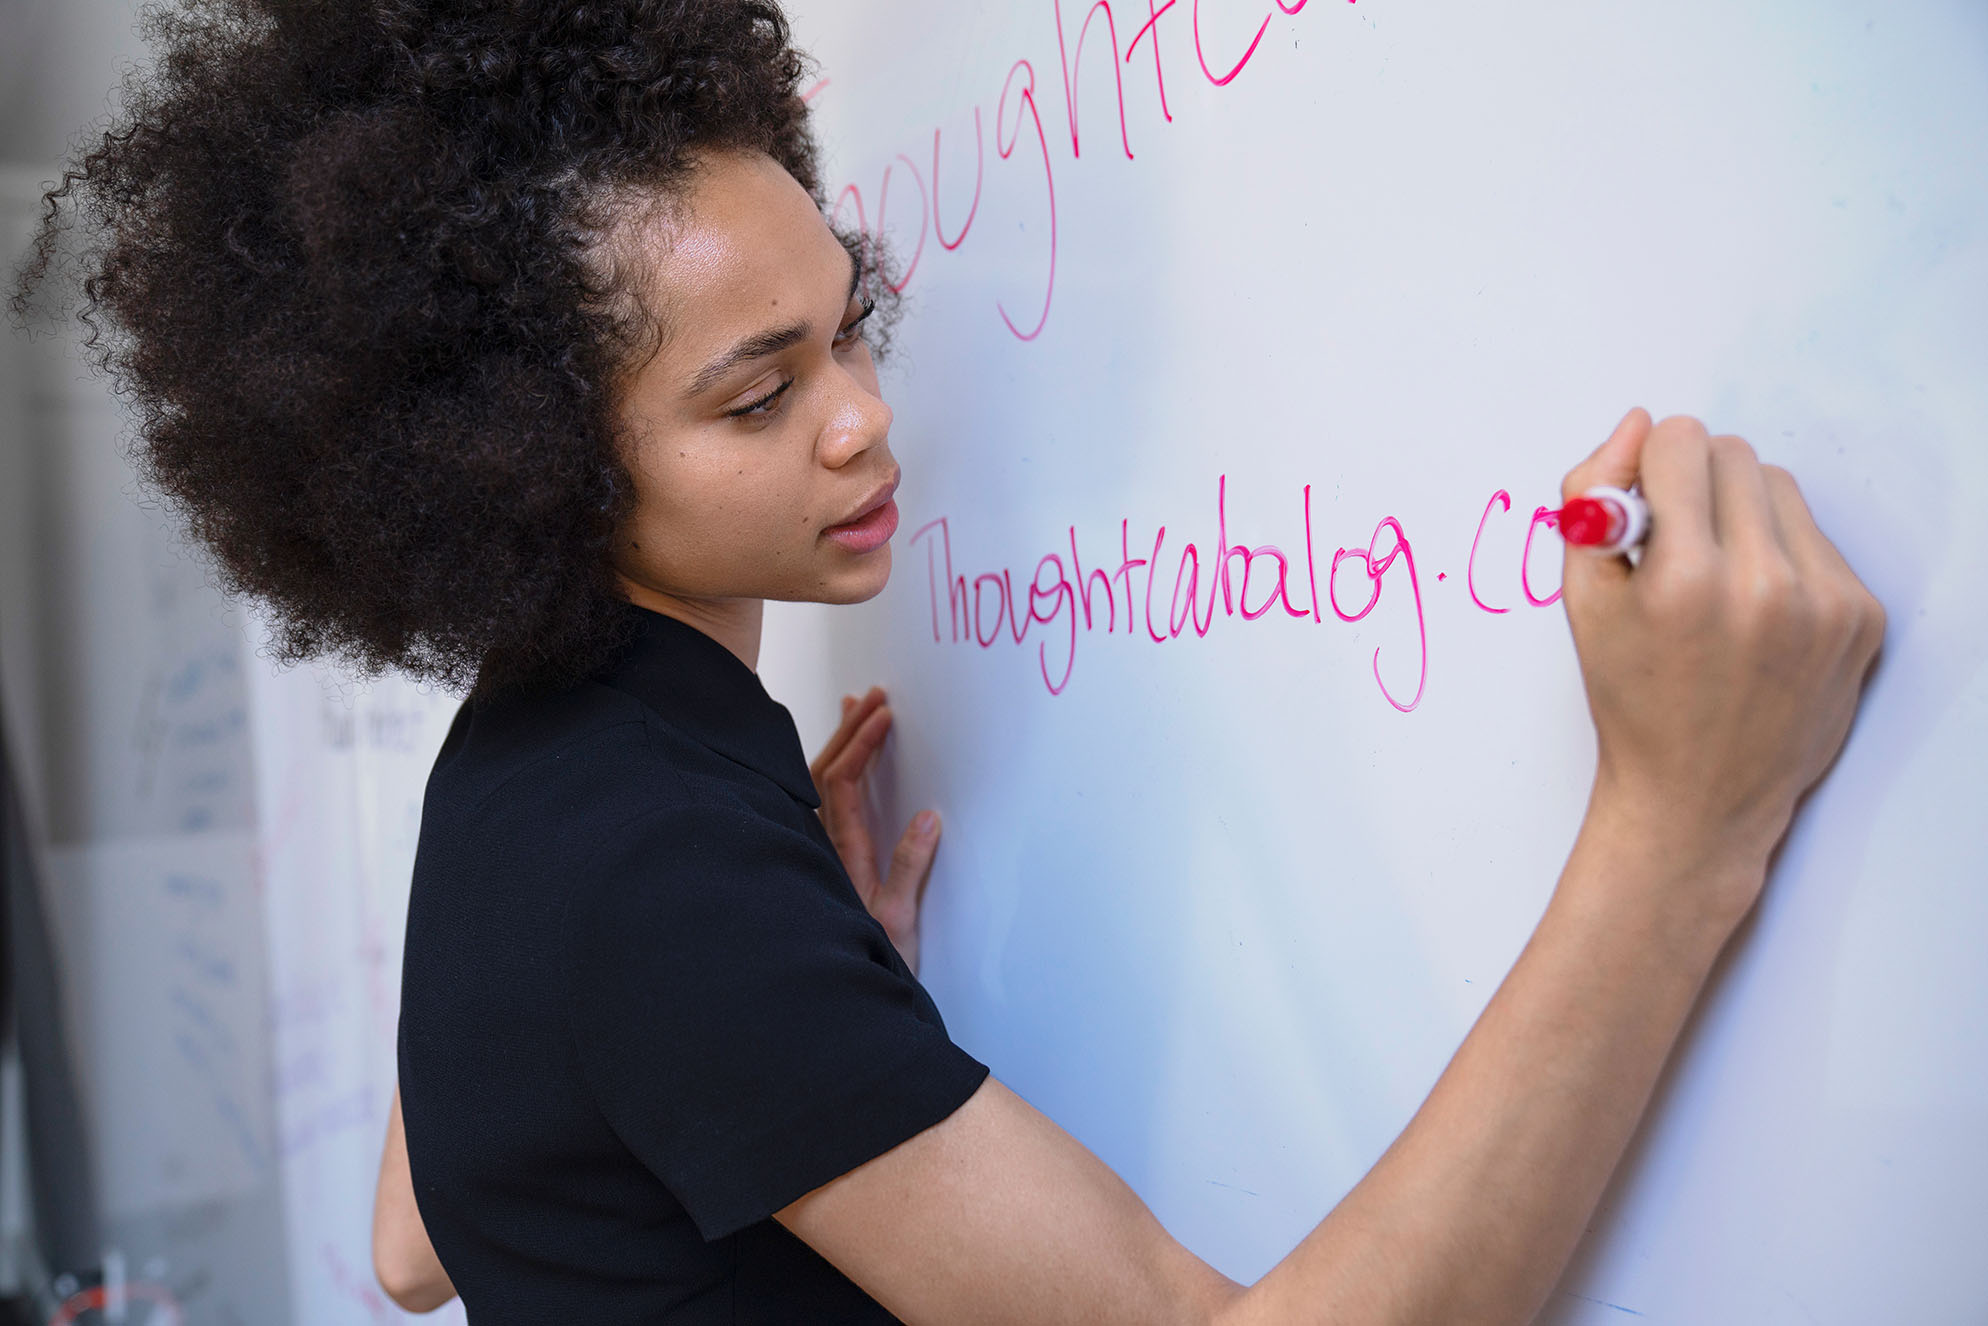 A woman uses a whiteboard during a meeting.